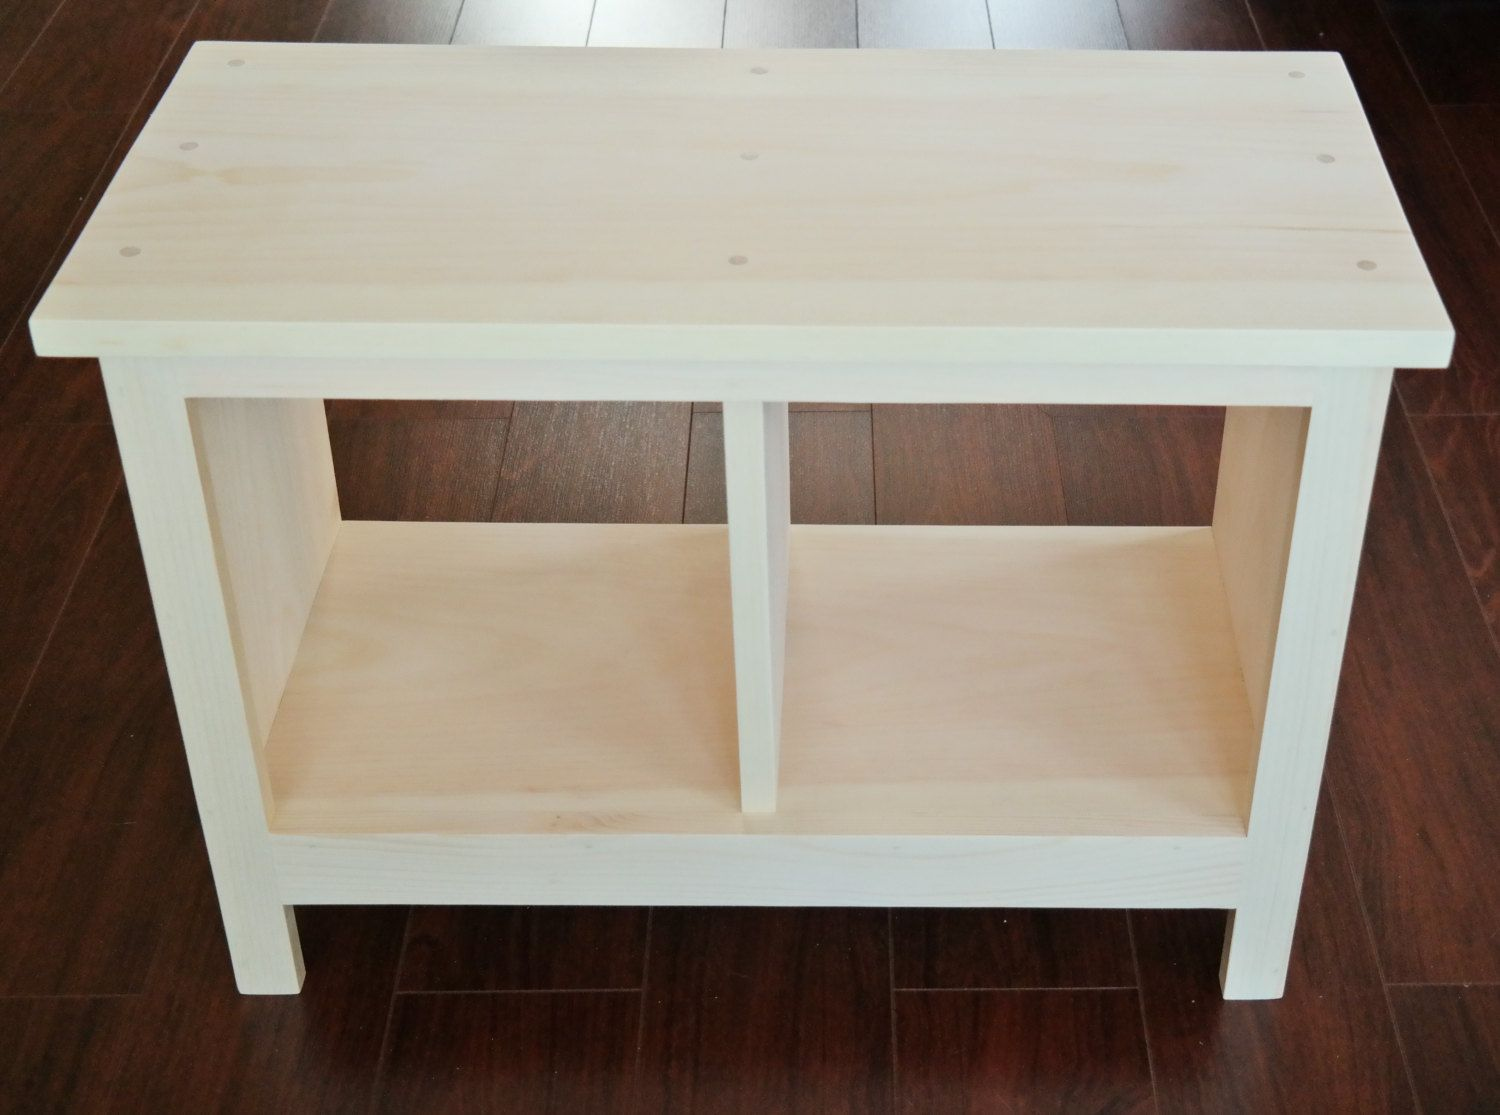 24 Inch Unfinished Entryway Bench Custom Furniture Shoe